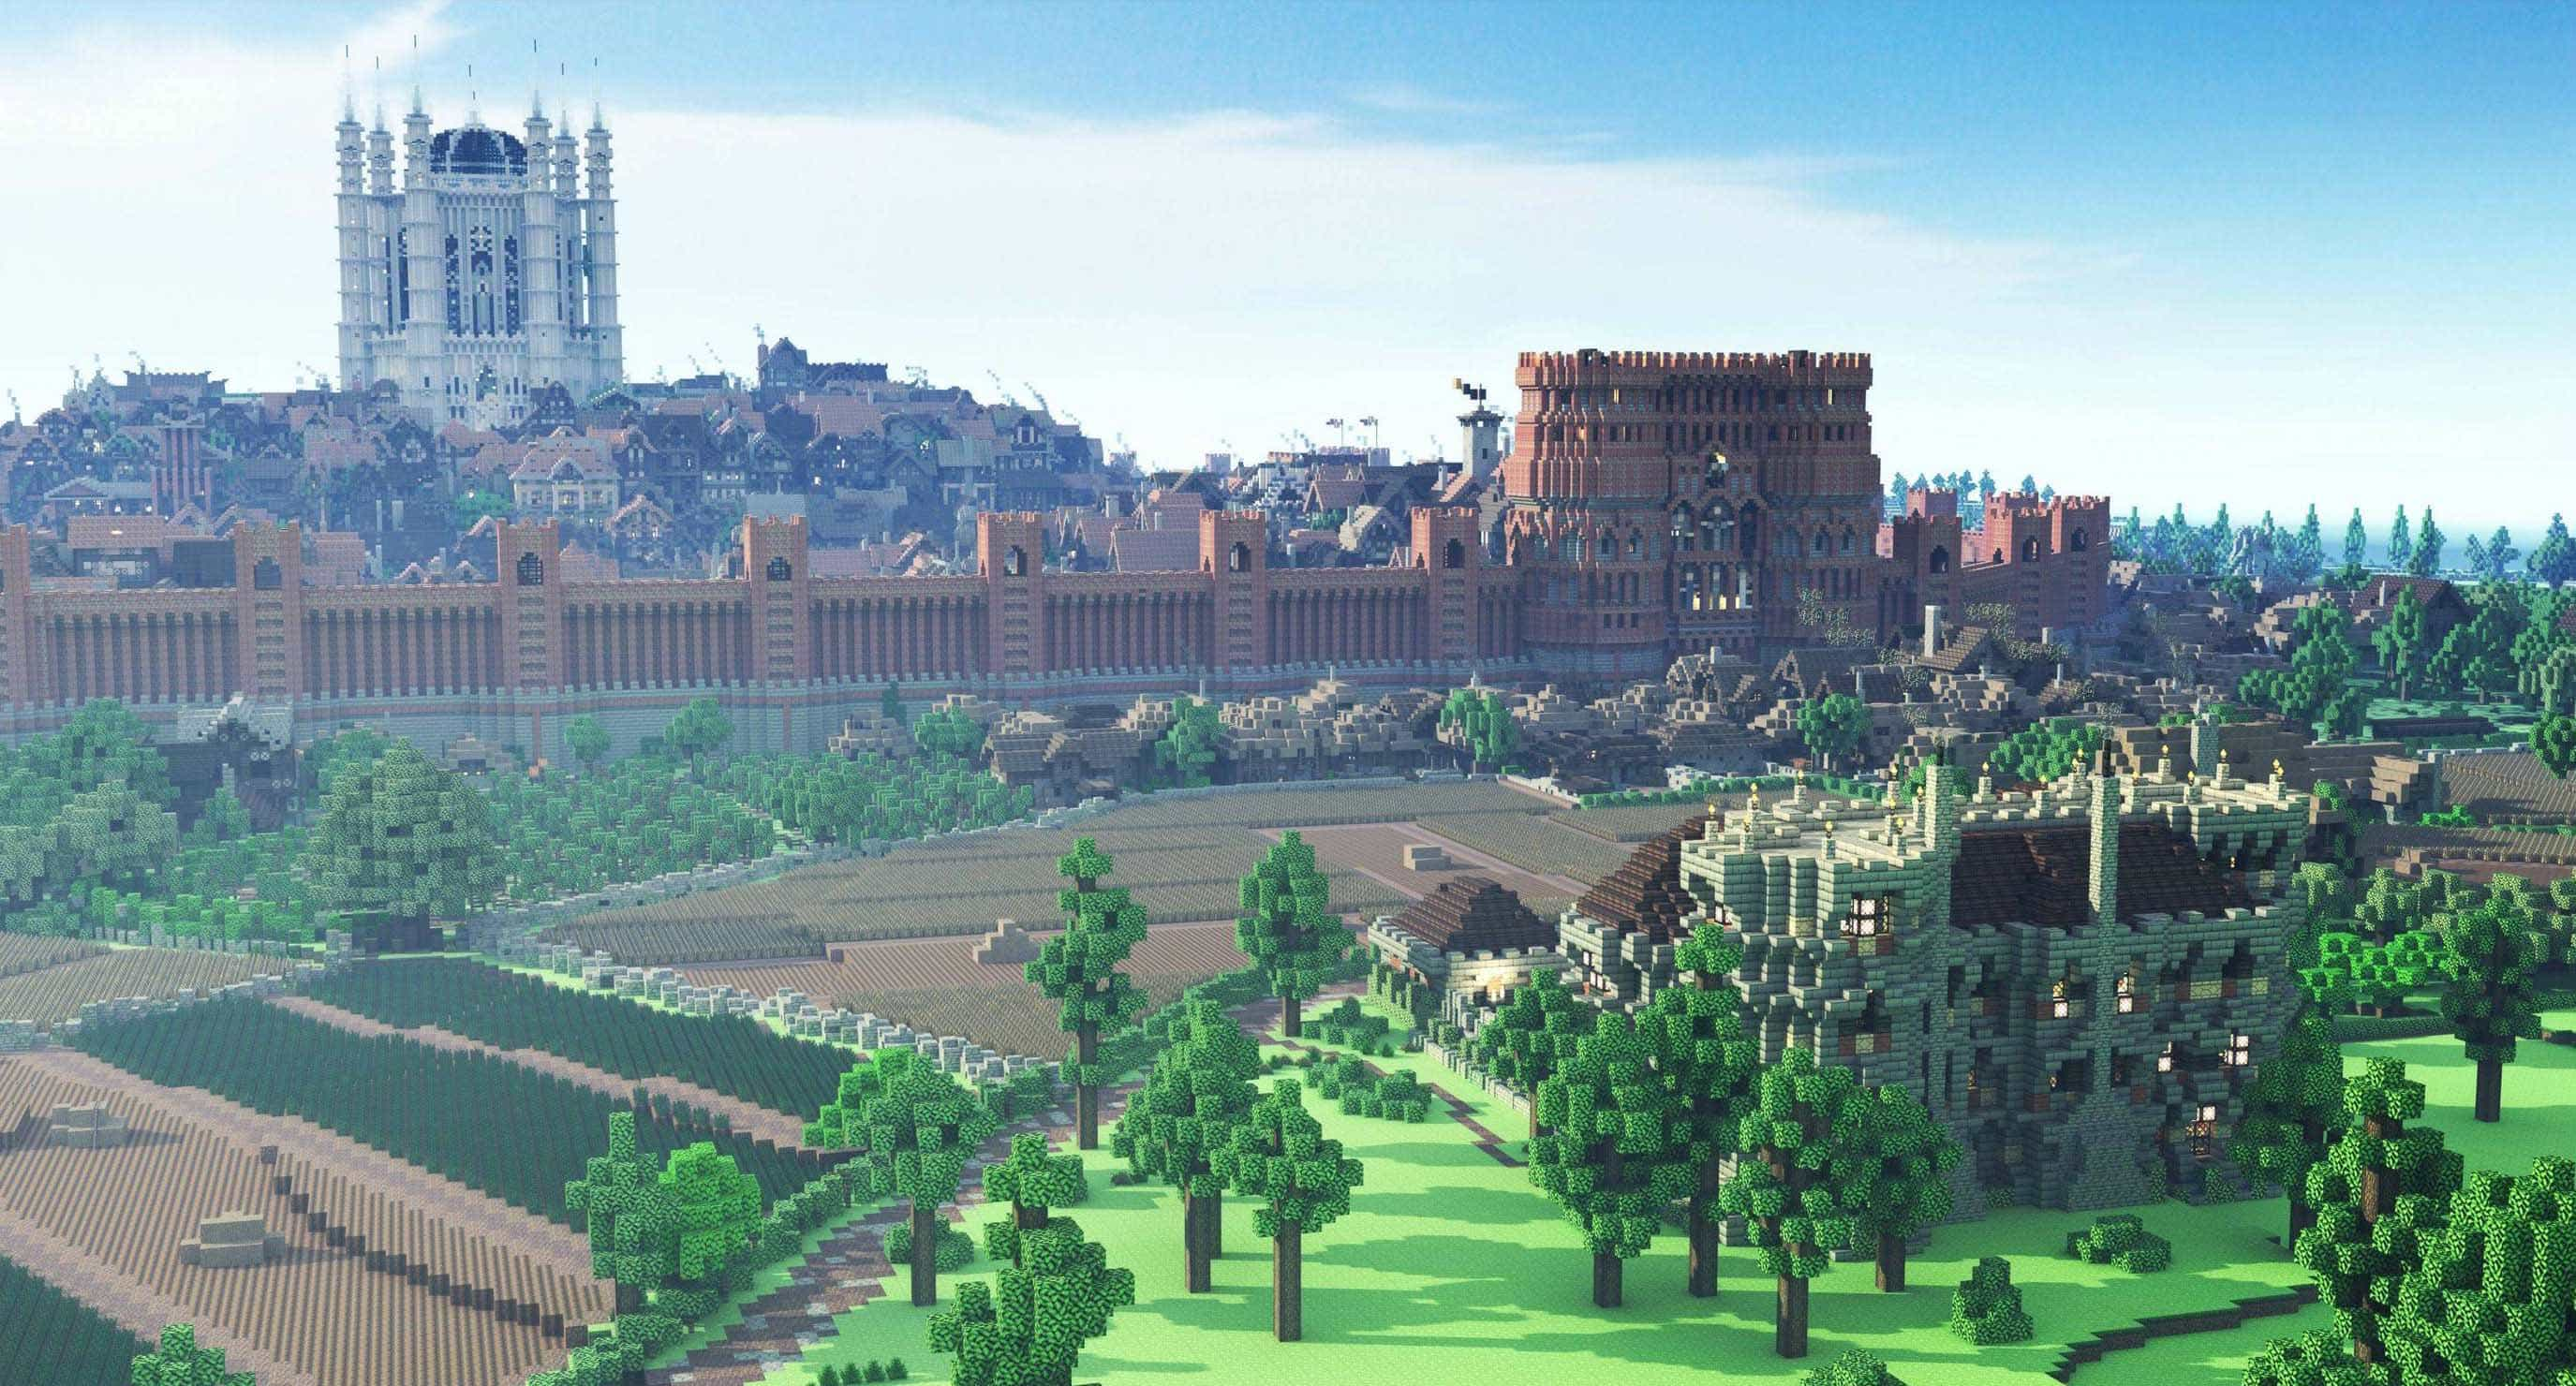 Game of thrones westeroscraft minecraft building inc minecraft game of thrones town buildings gumiabroncs Image collections